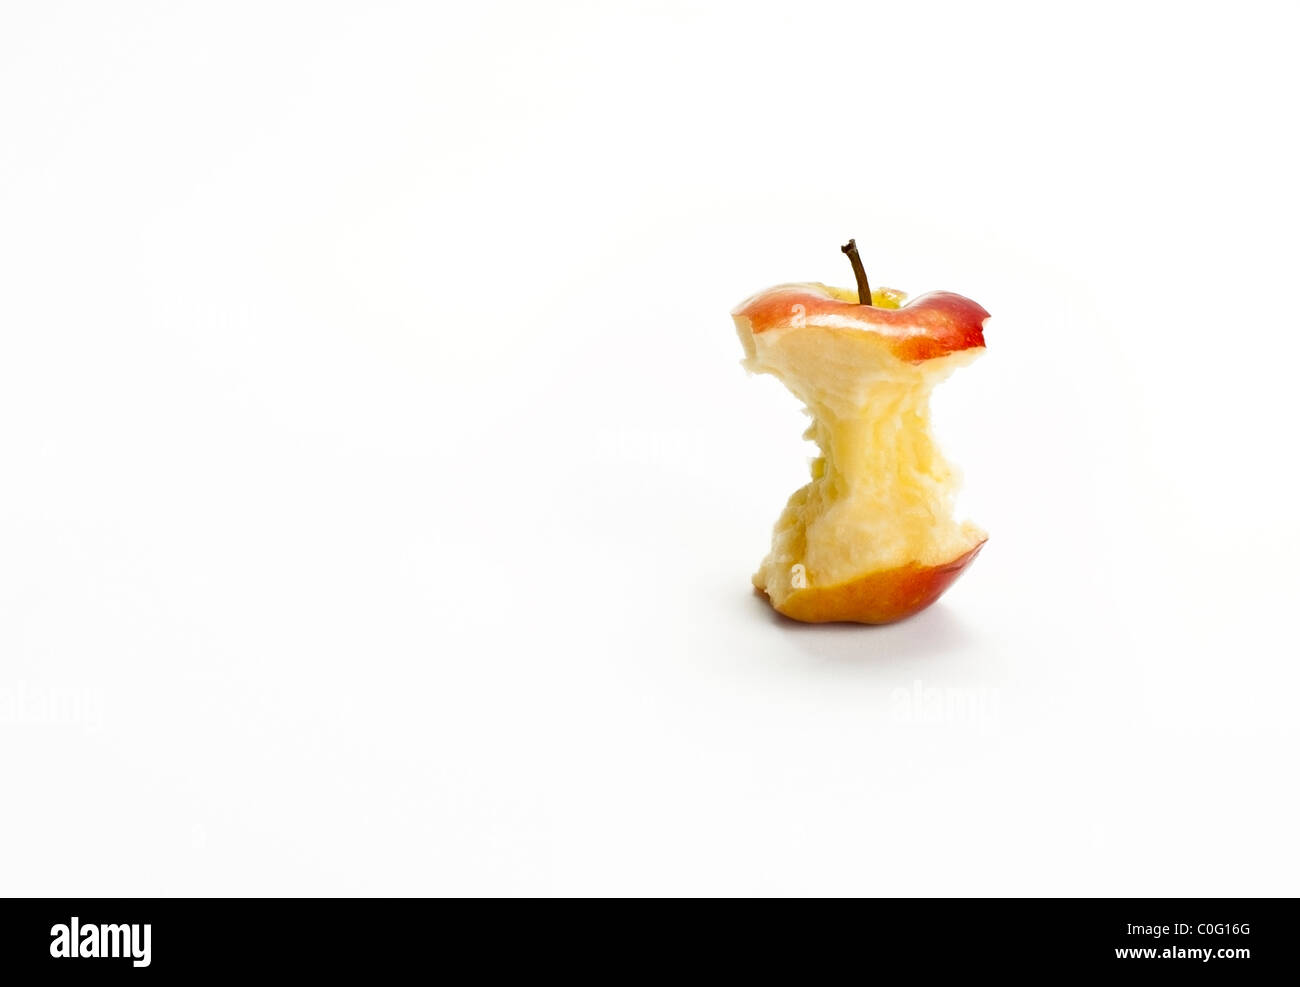 An apple core composed off center with white background and room for copy or cutout. - Stock Image